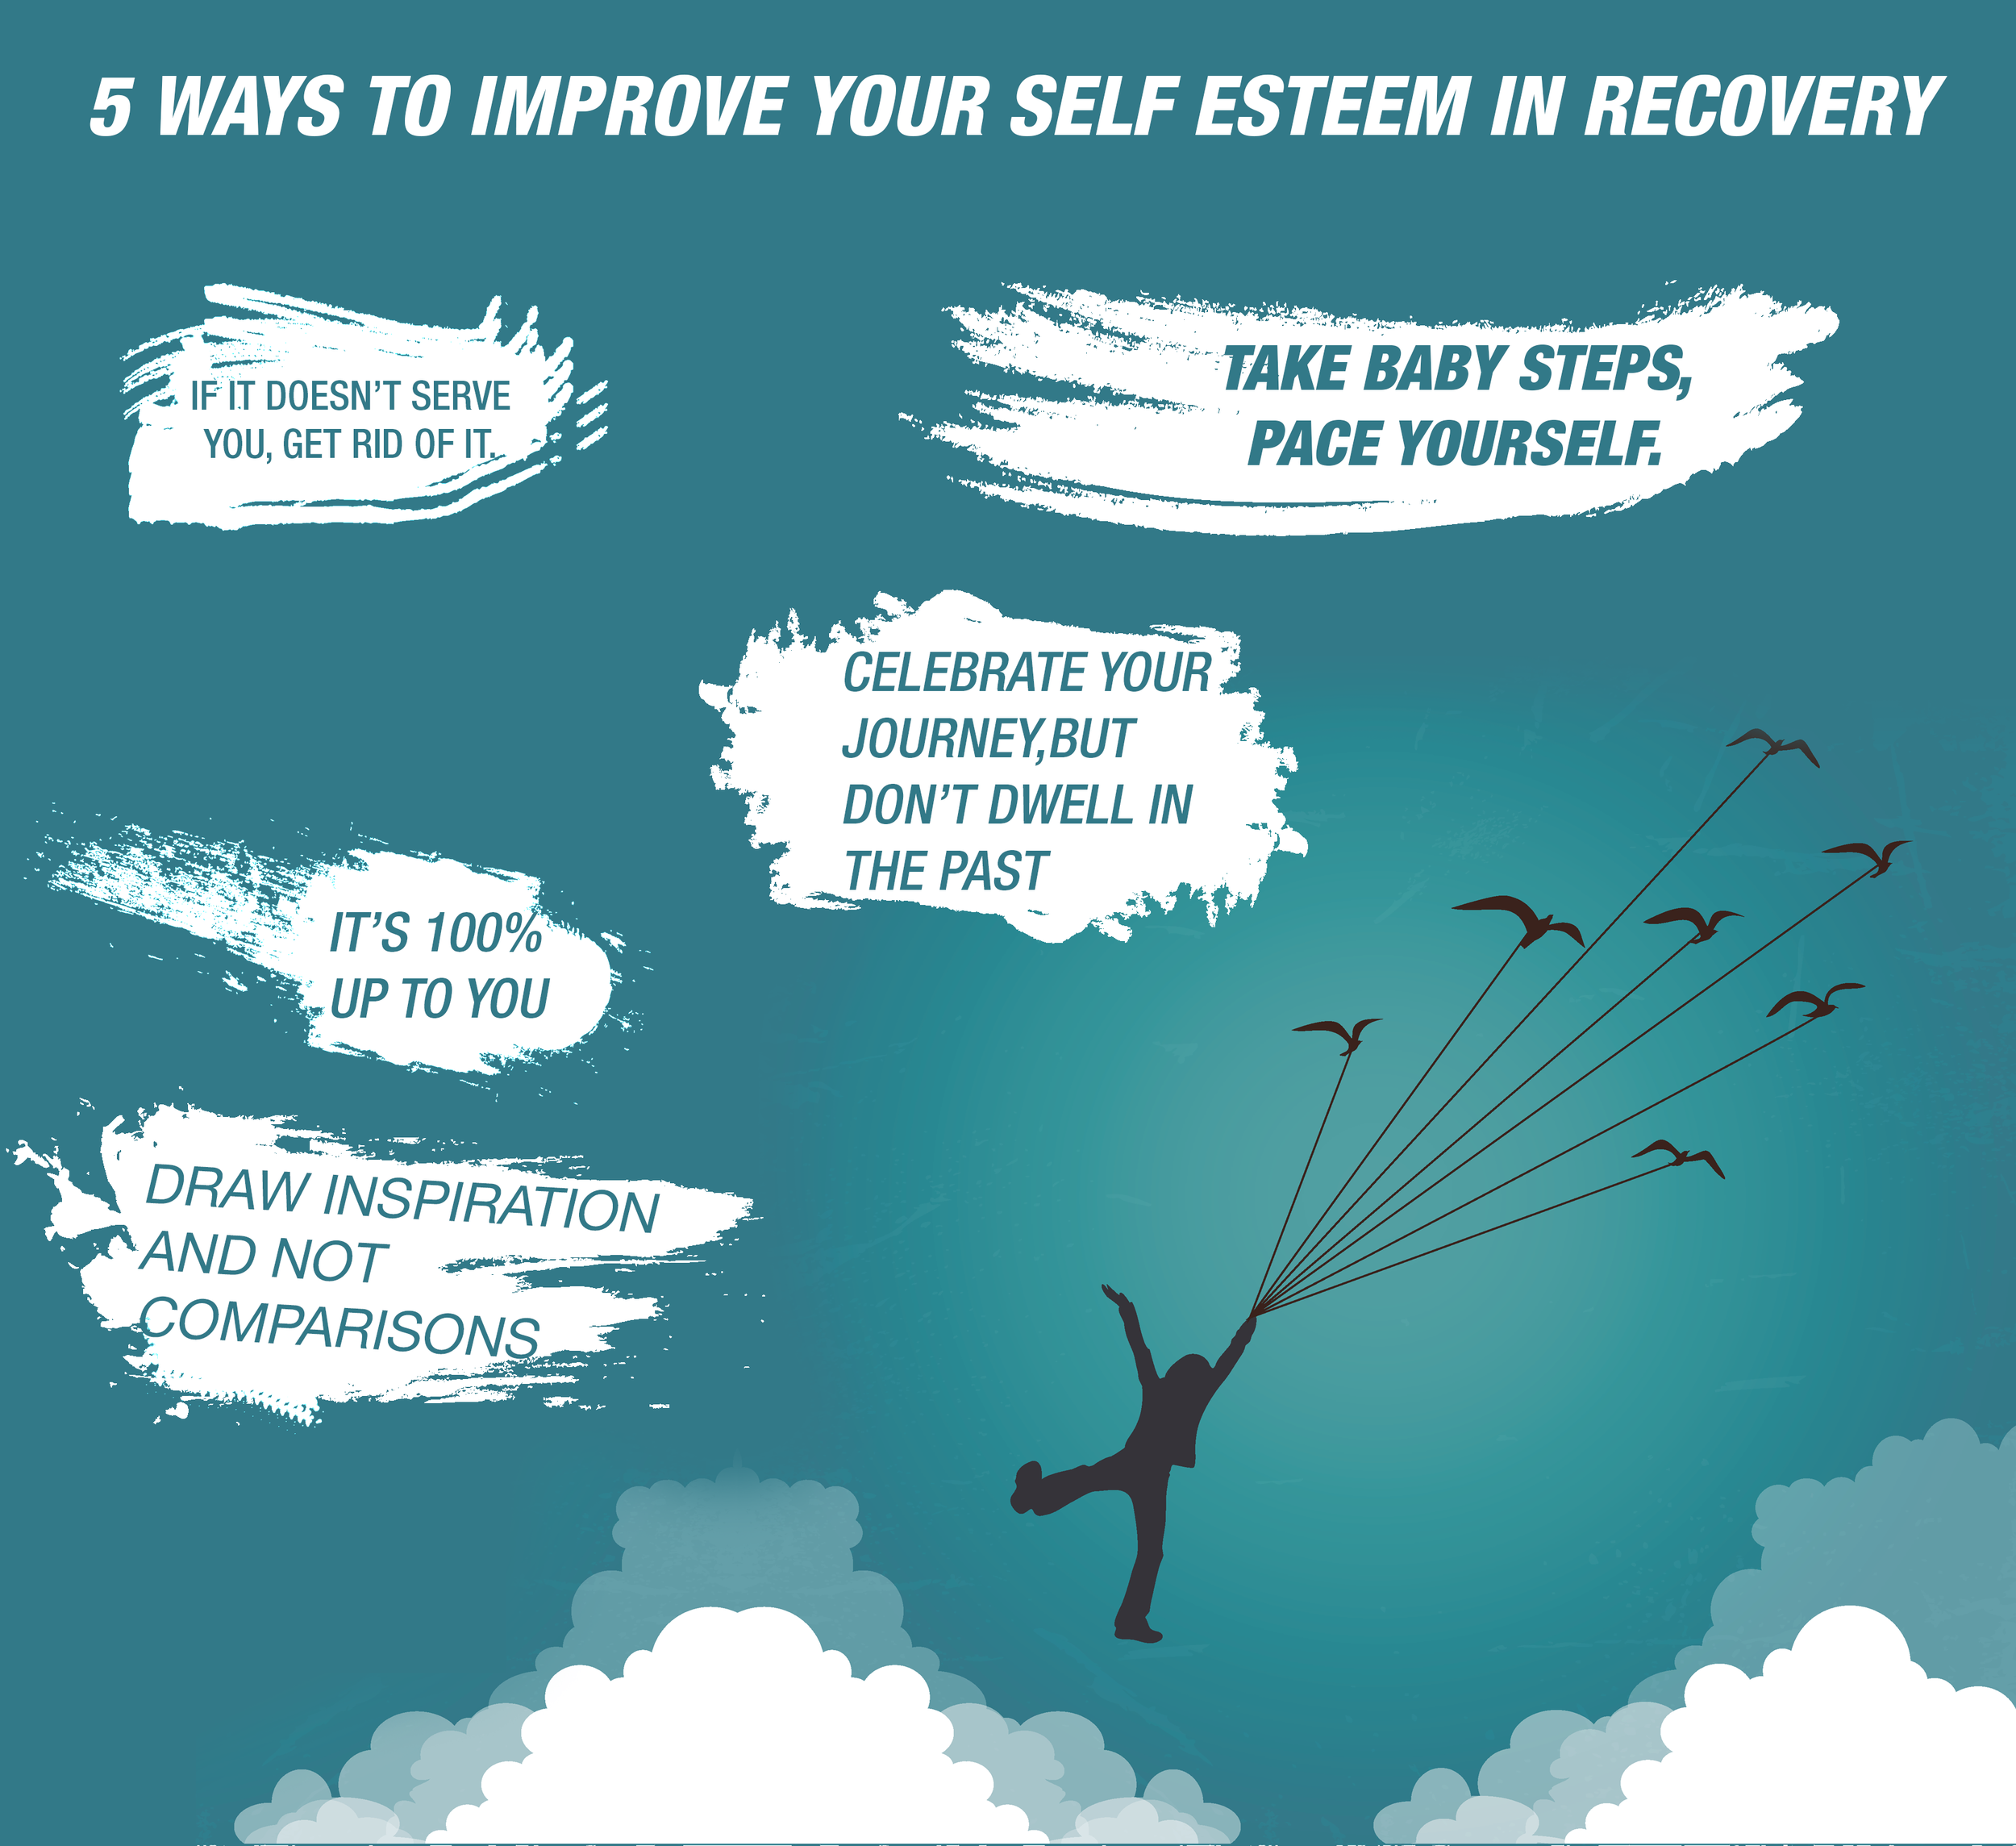 If you're in recovery, it's important to develop a healthy sense of self-esteem. Click to discover 5 ways to do just that during this important time.